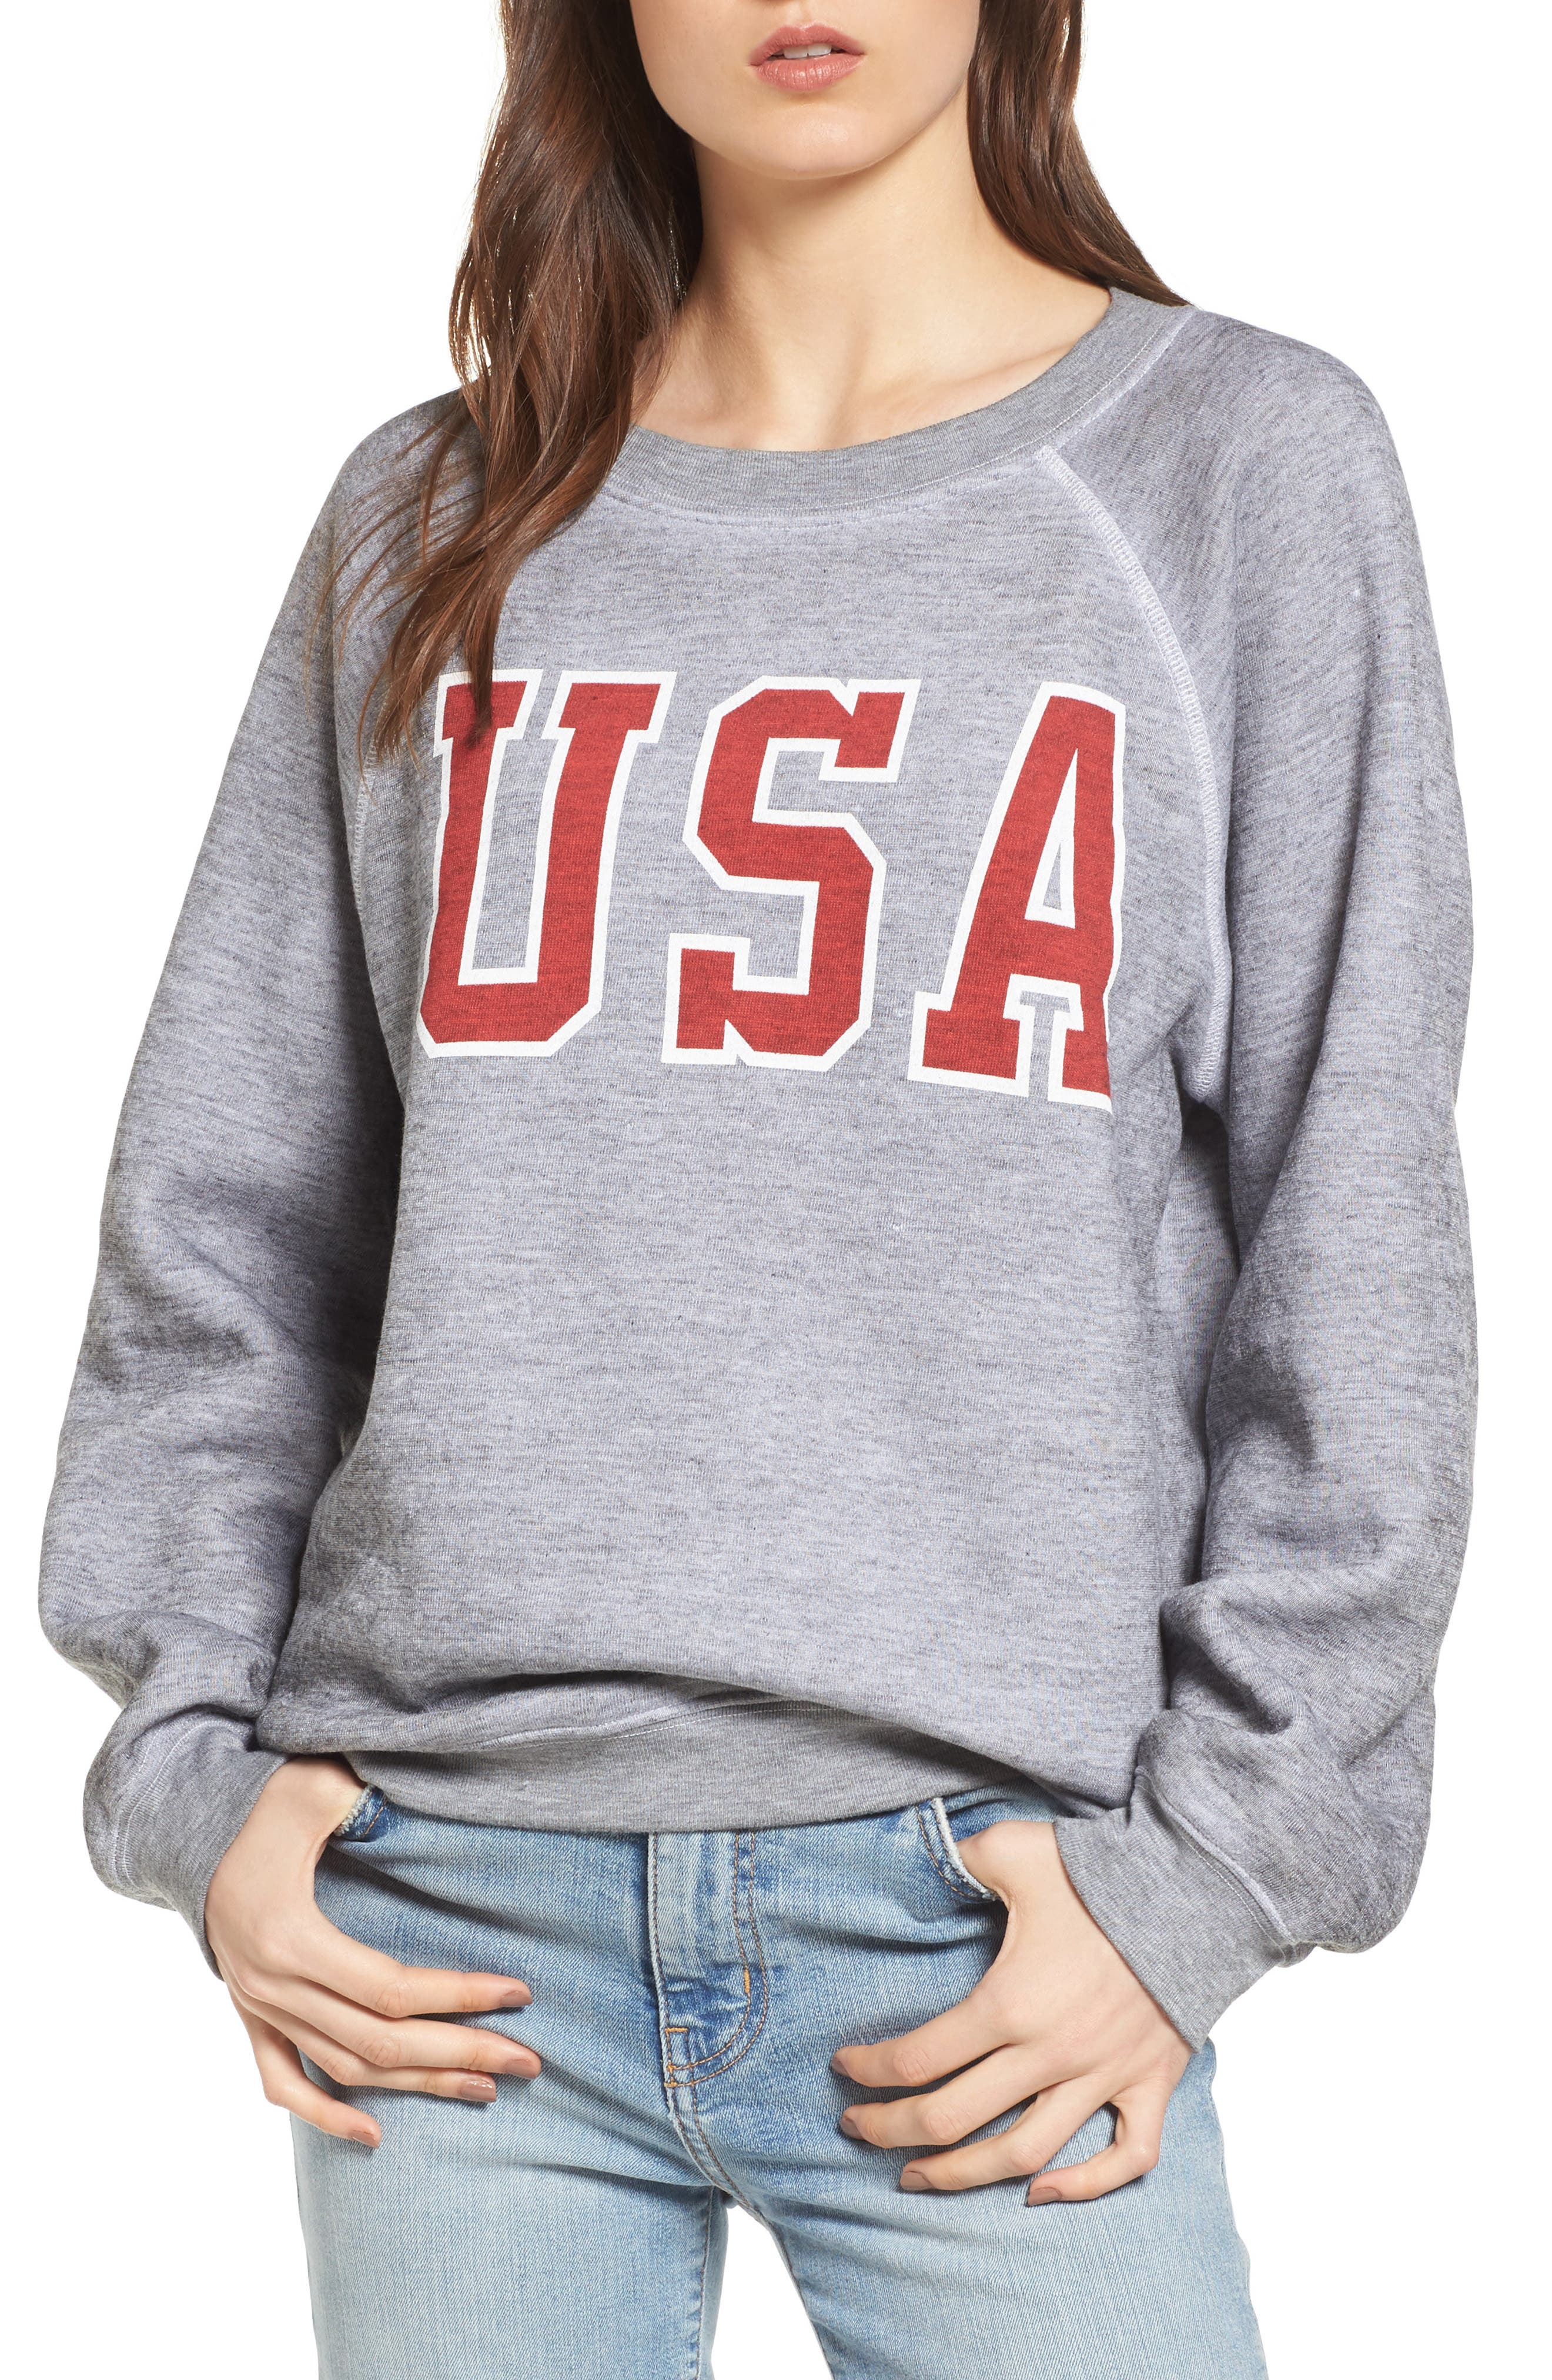 Alternate Image 1 Selected - Wildfox Baggy Beach Jumper - USA Pullover